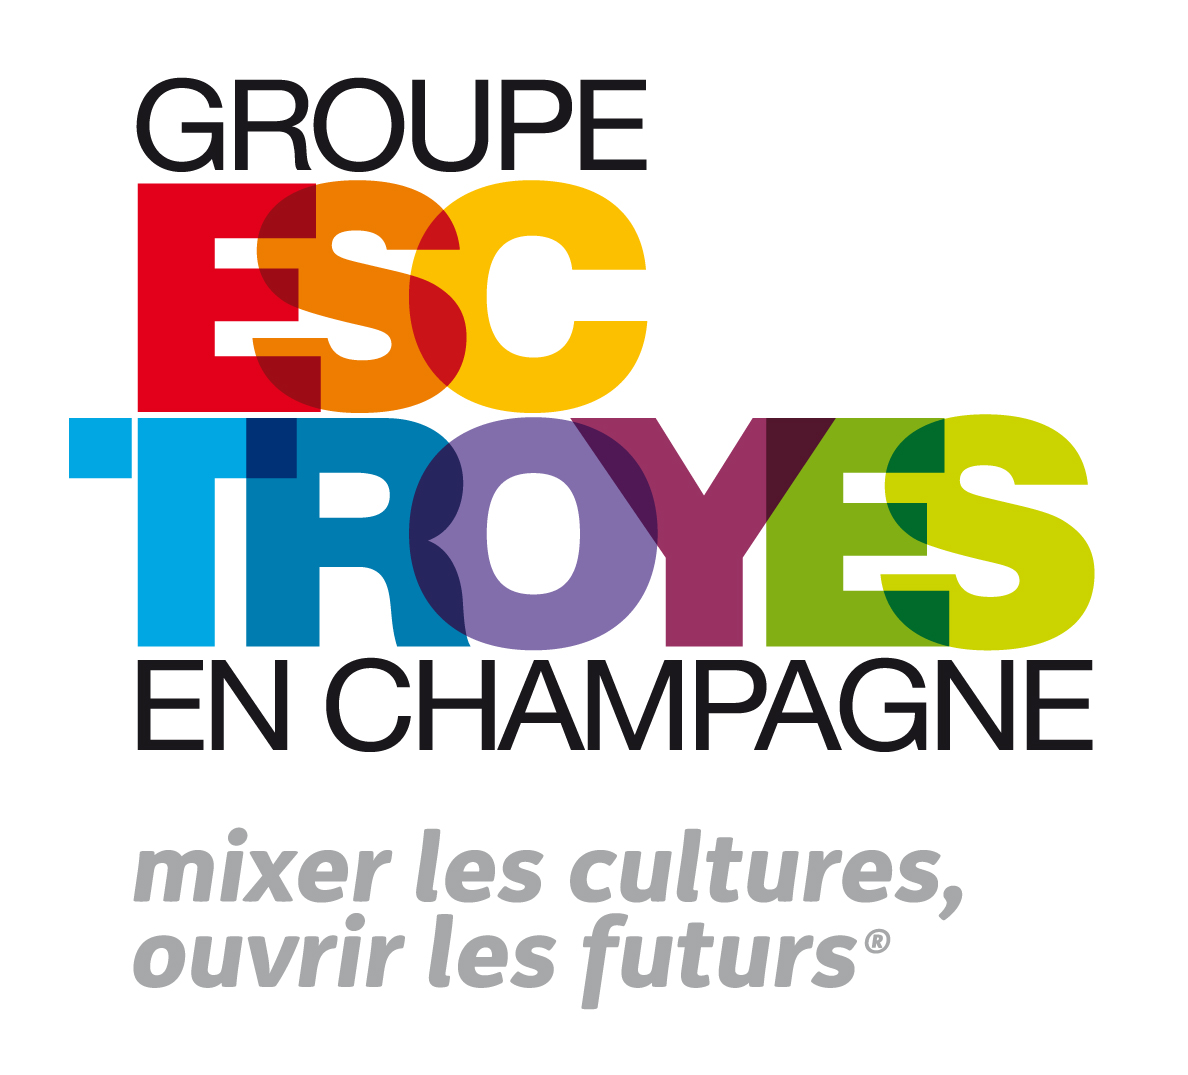 Groupe ESC Troyes en Champagne